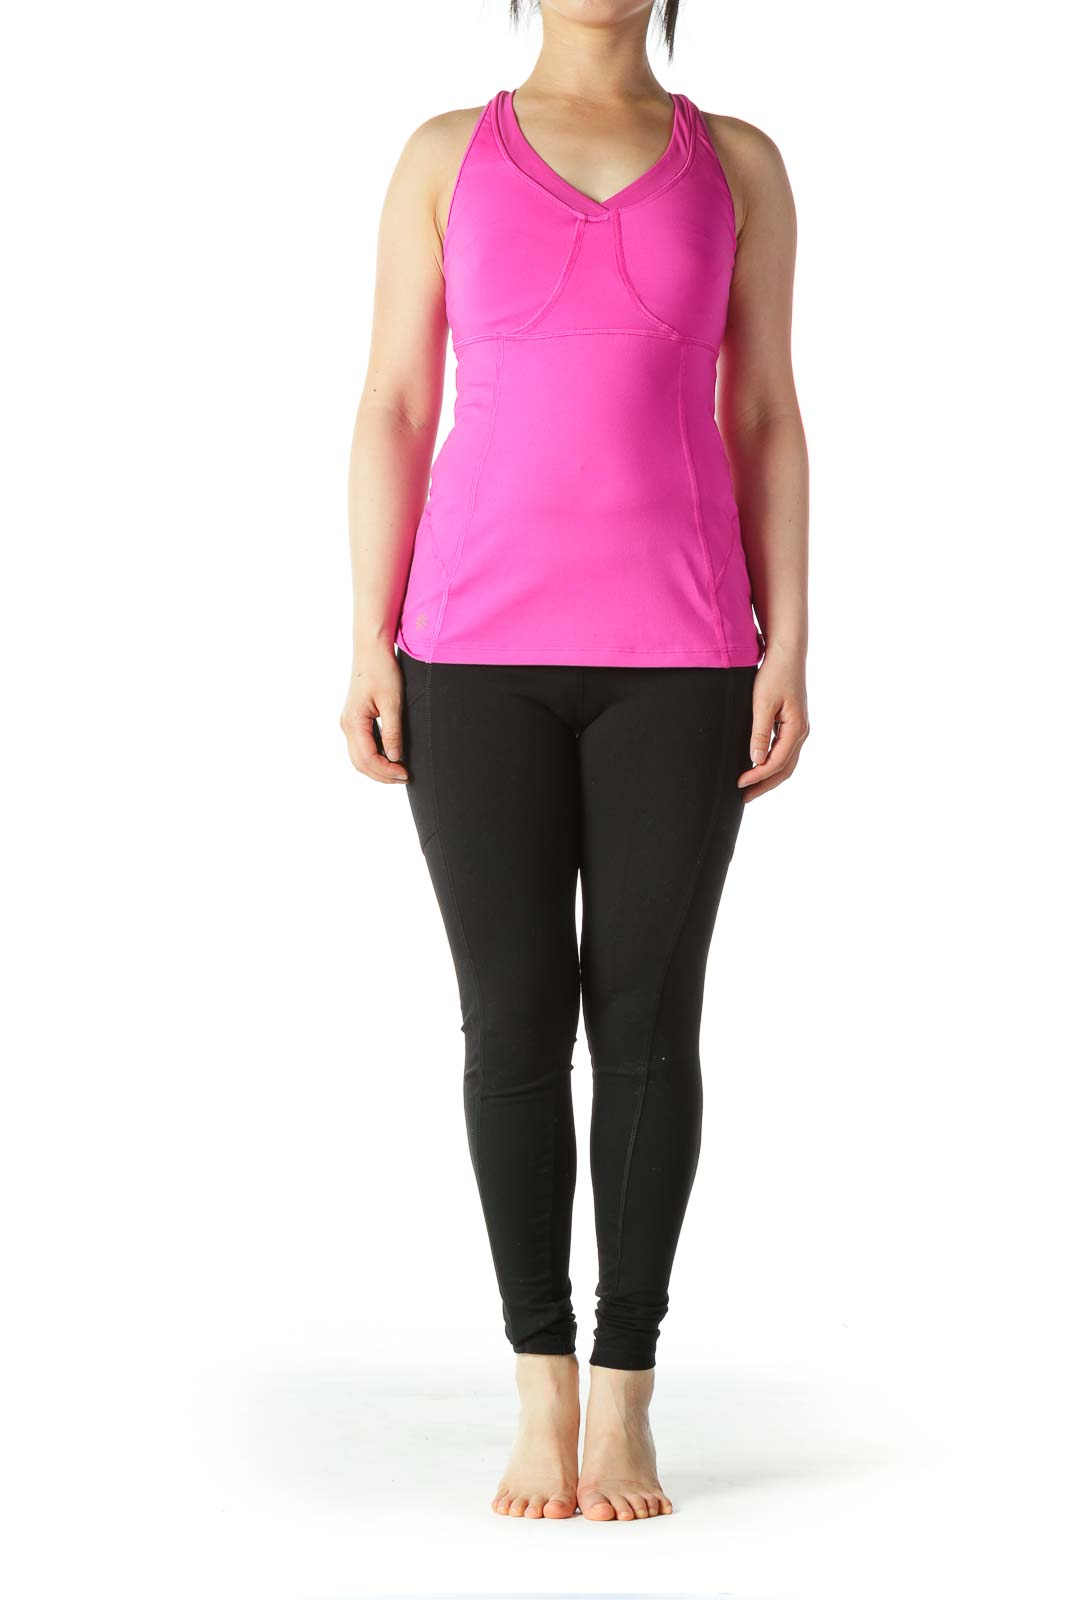 Magenta-Pink Mesh-Detail Sports Tank with Built-In Bra